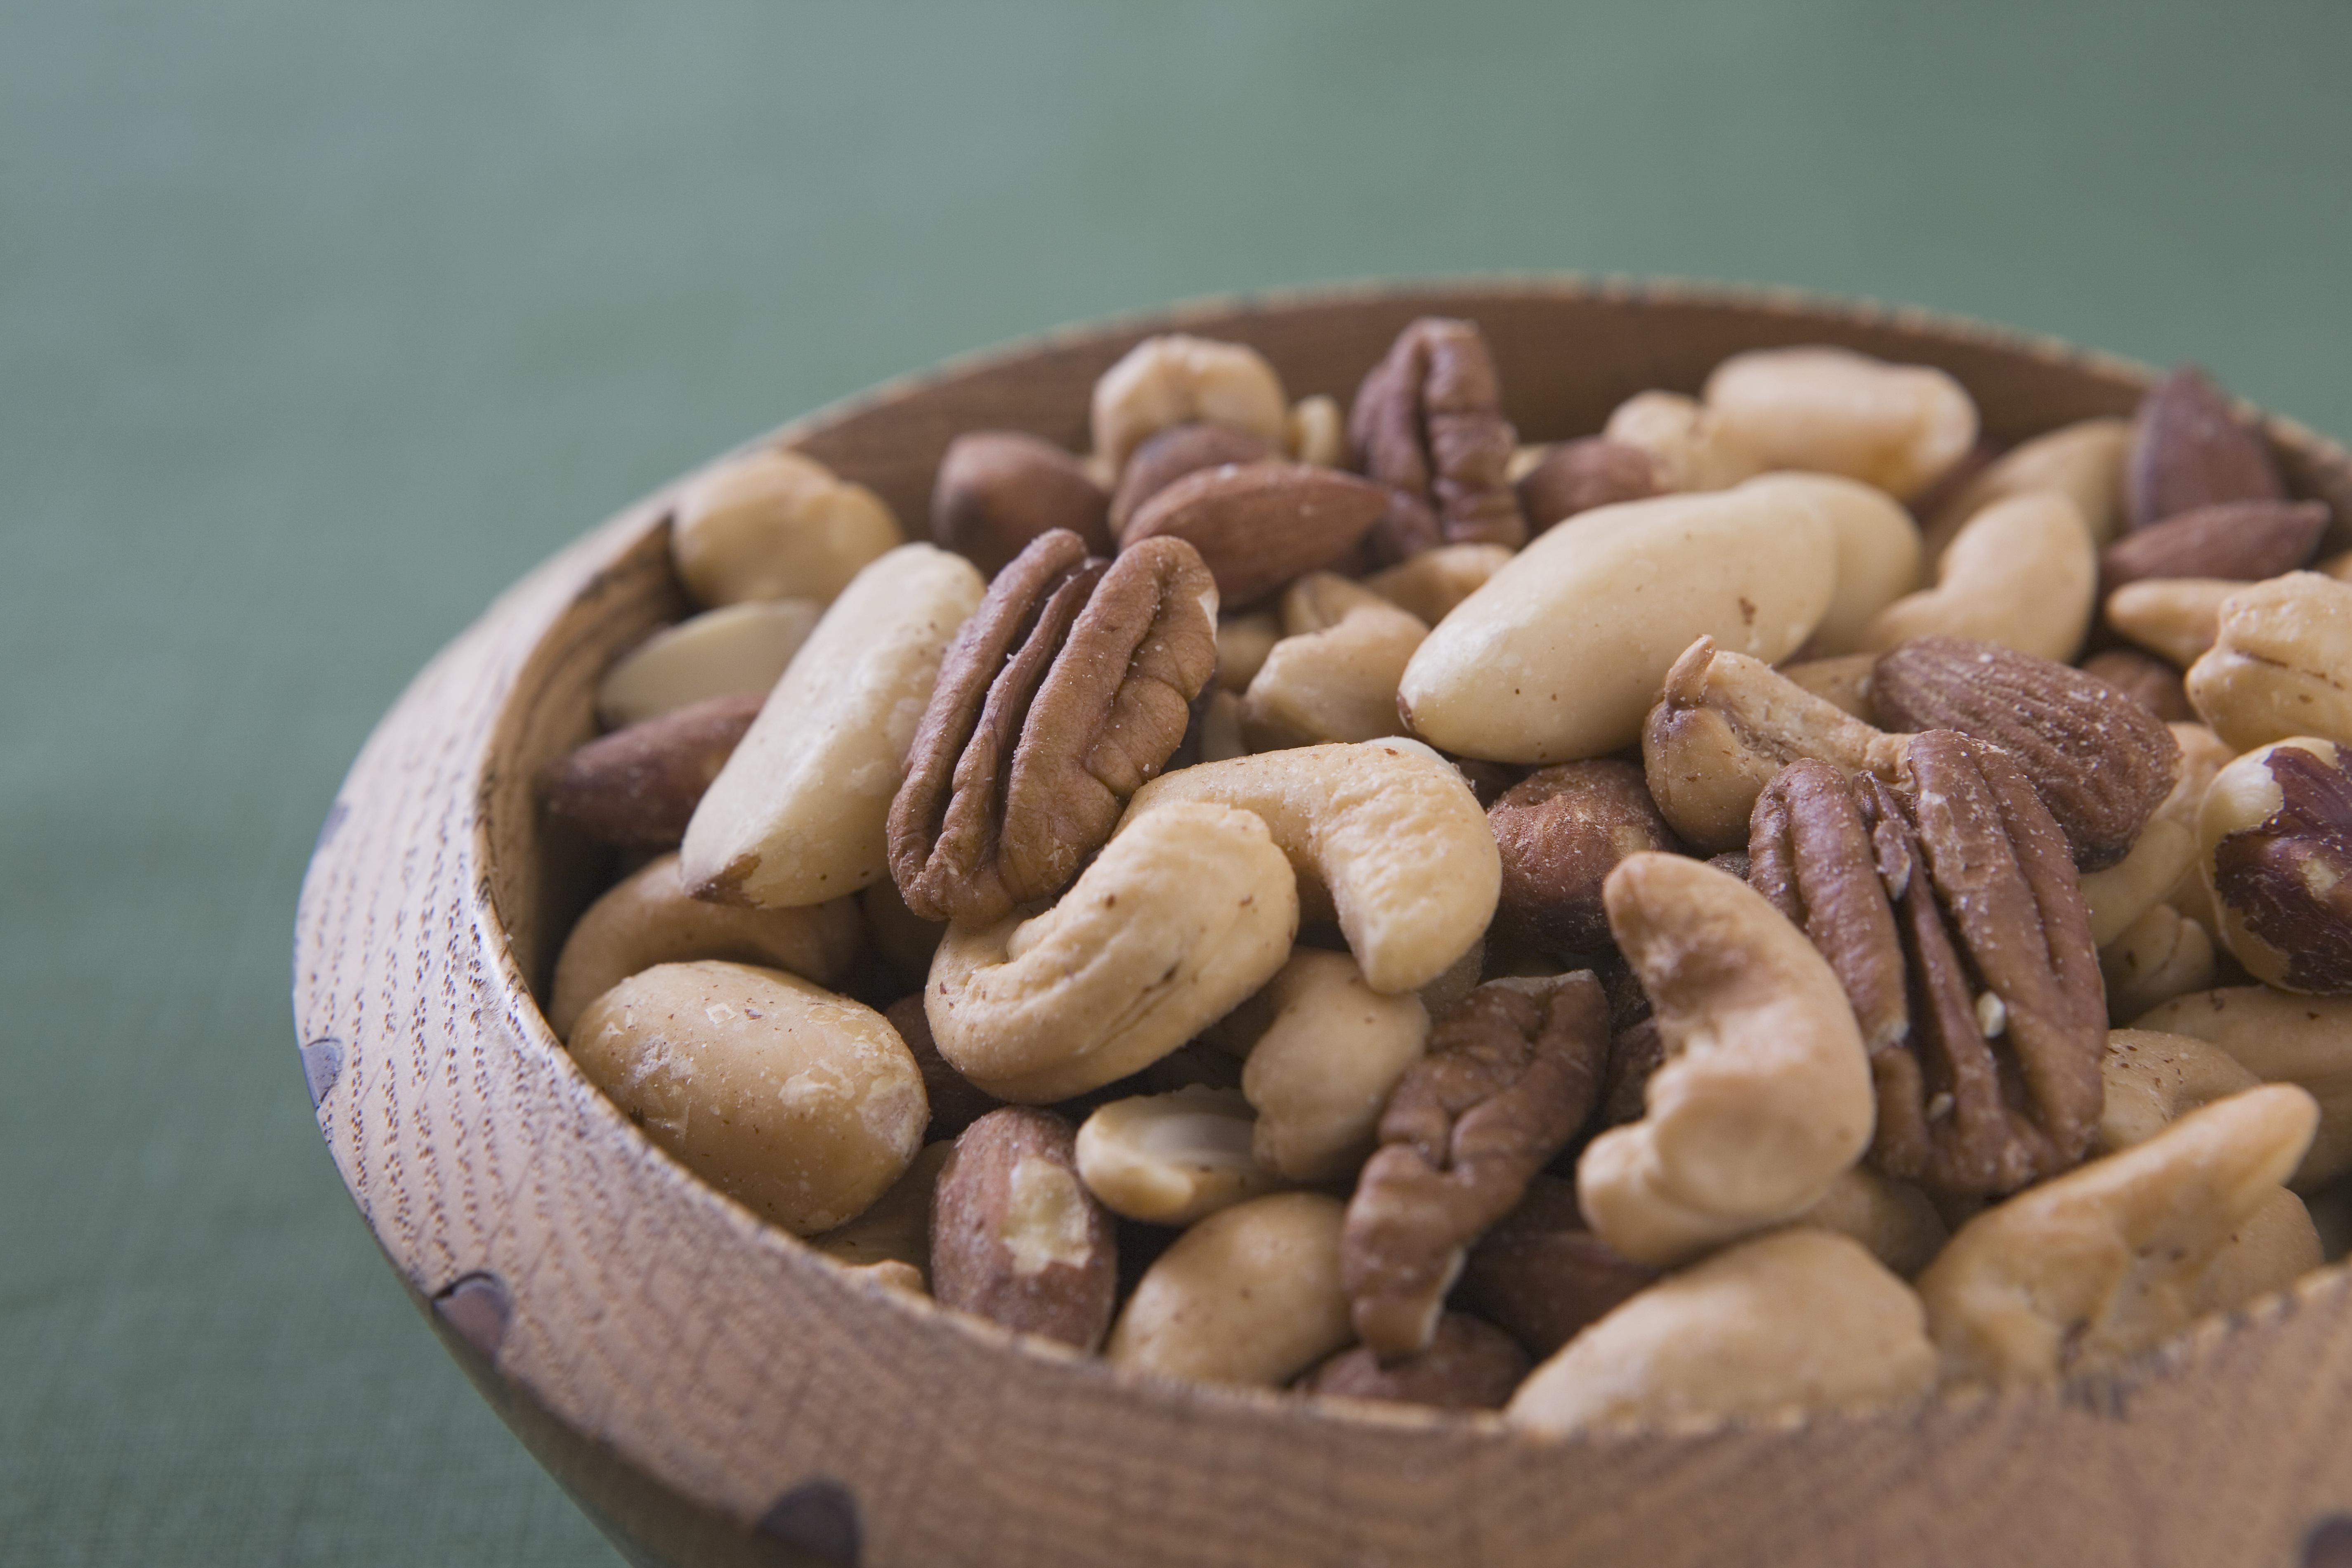 Learn More About Carbs Fats And Calories In Nuts And Seeds